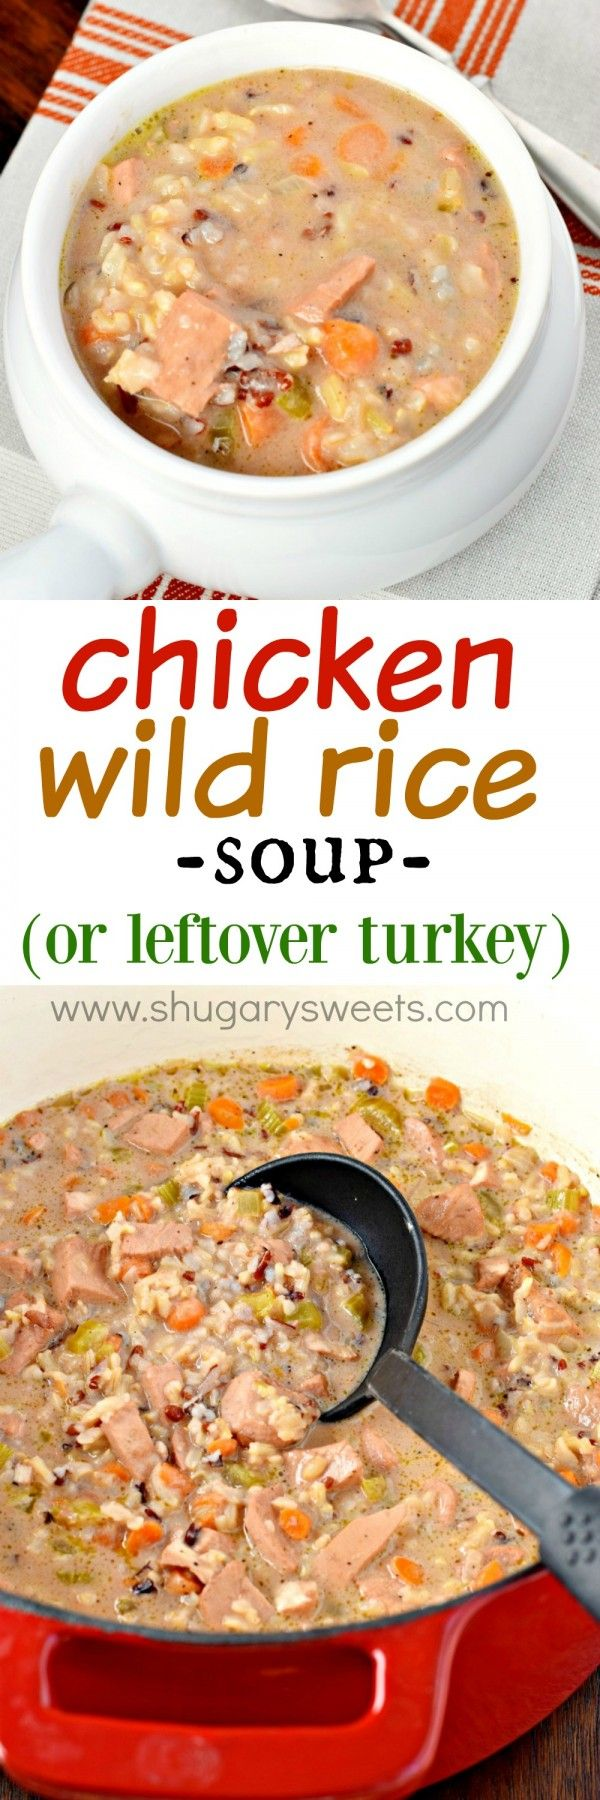 340 best lets give thanks images on pinterest kitchens thick creamy and hearty this chicken wild rice soup the perfect comfort food recipe for dinner tonight also great with leftover turkey recipe from forumfinder Image collections